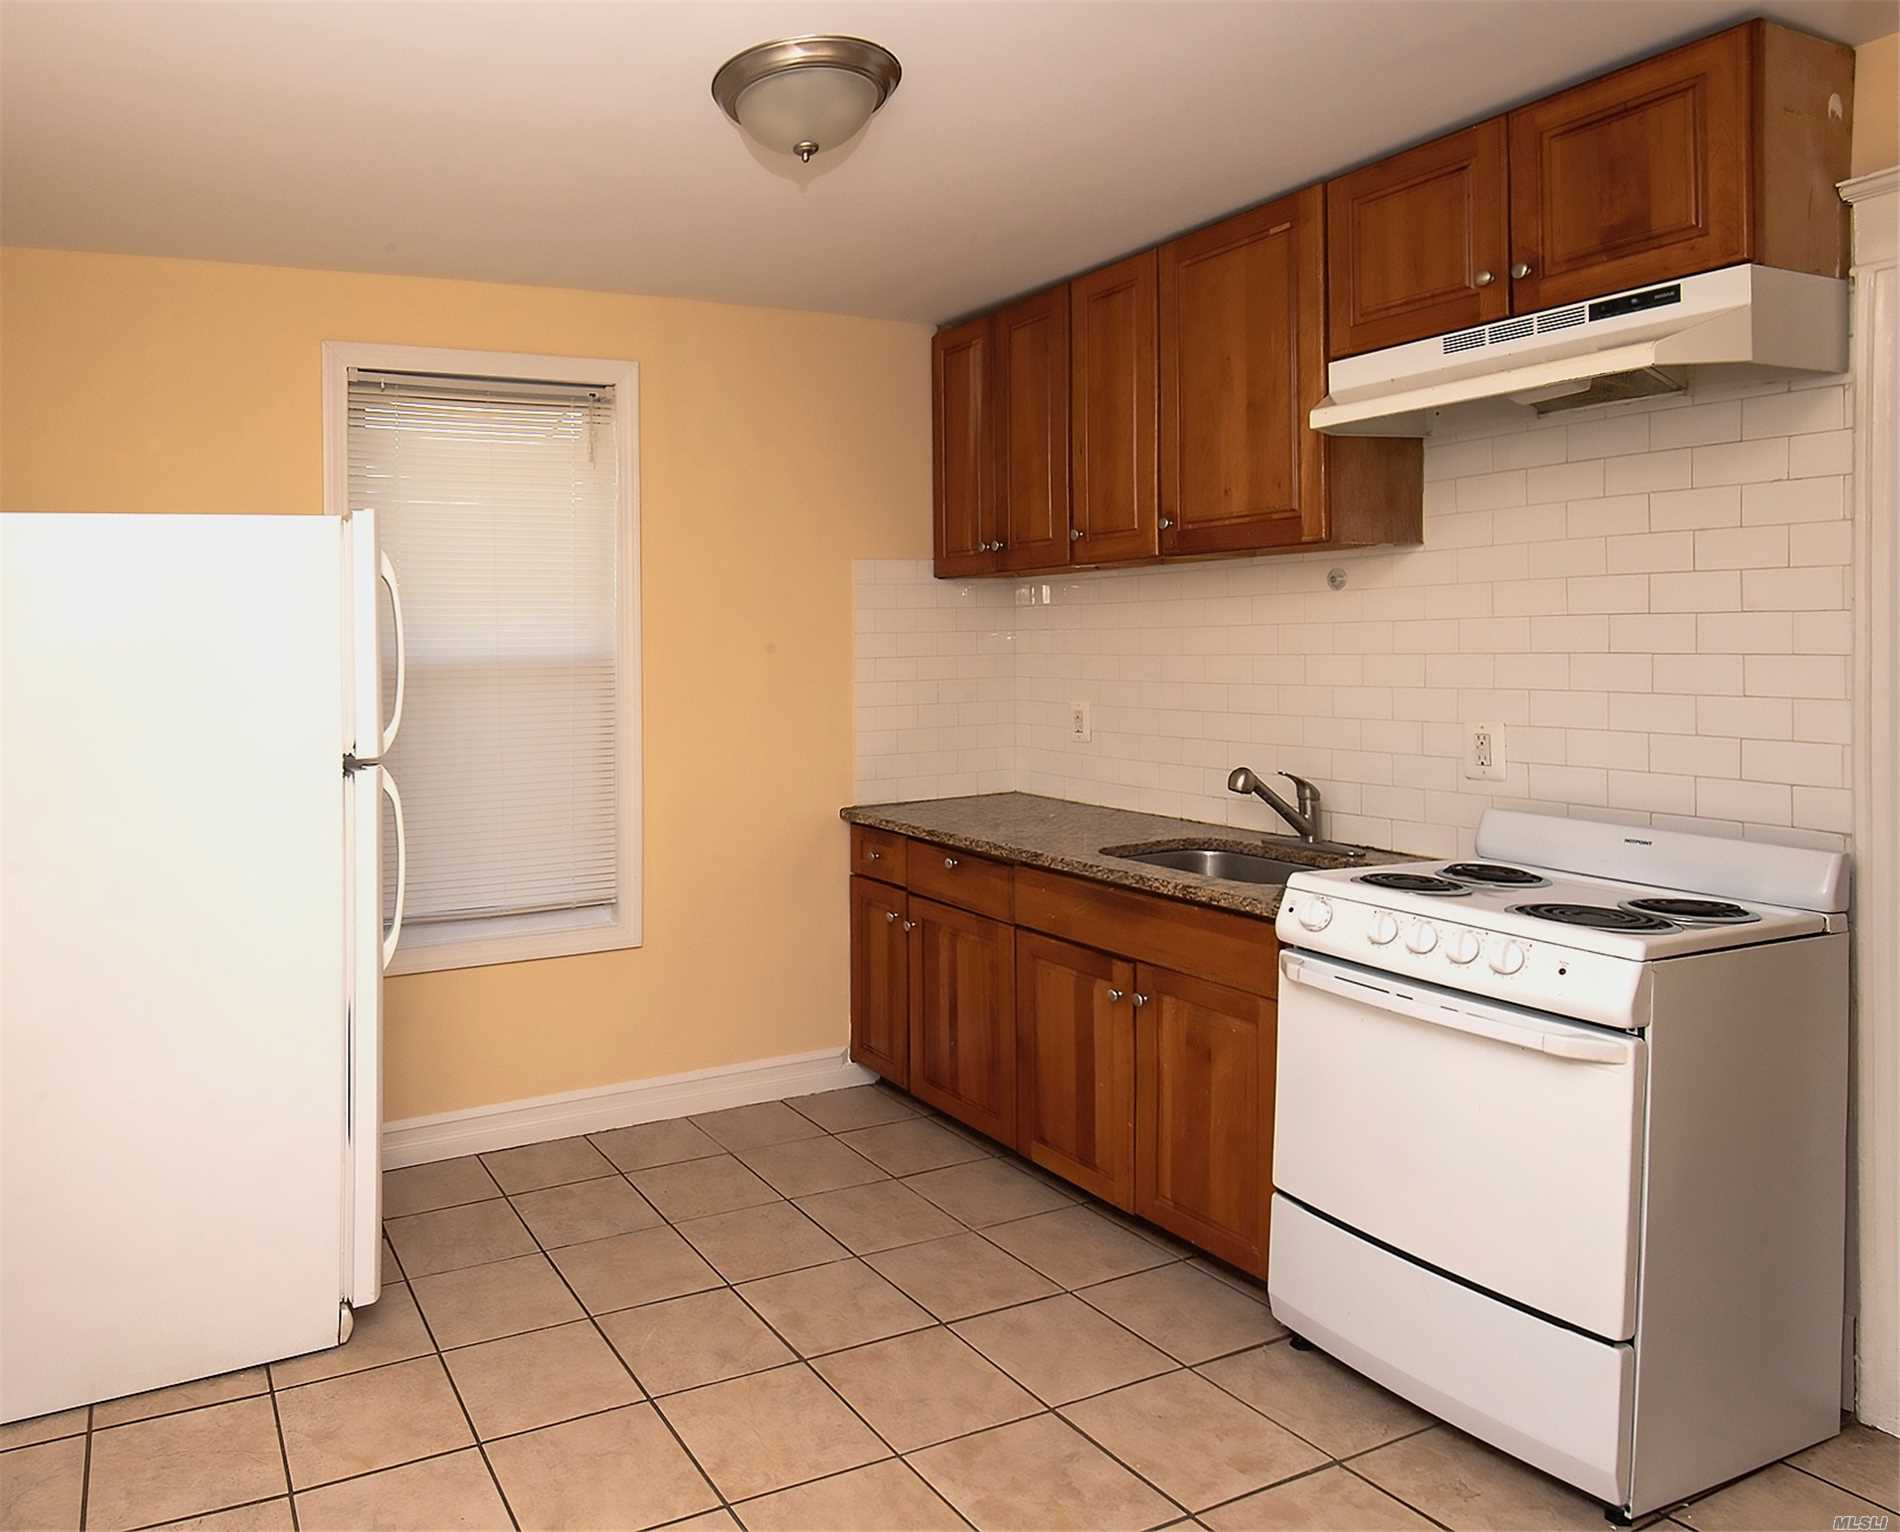 Lovely Apartment Located On The 2nd Floor. There Is 1 Large Bedroom, A Kitchen And Bath, Excellent Location For Public Transportation And Shopping.